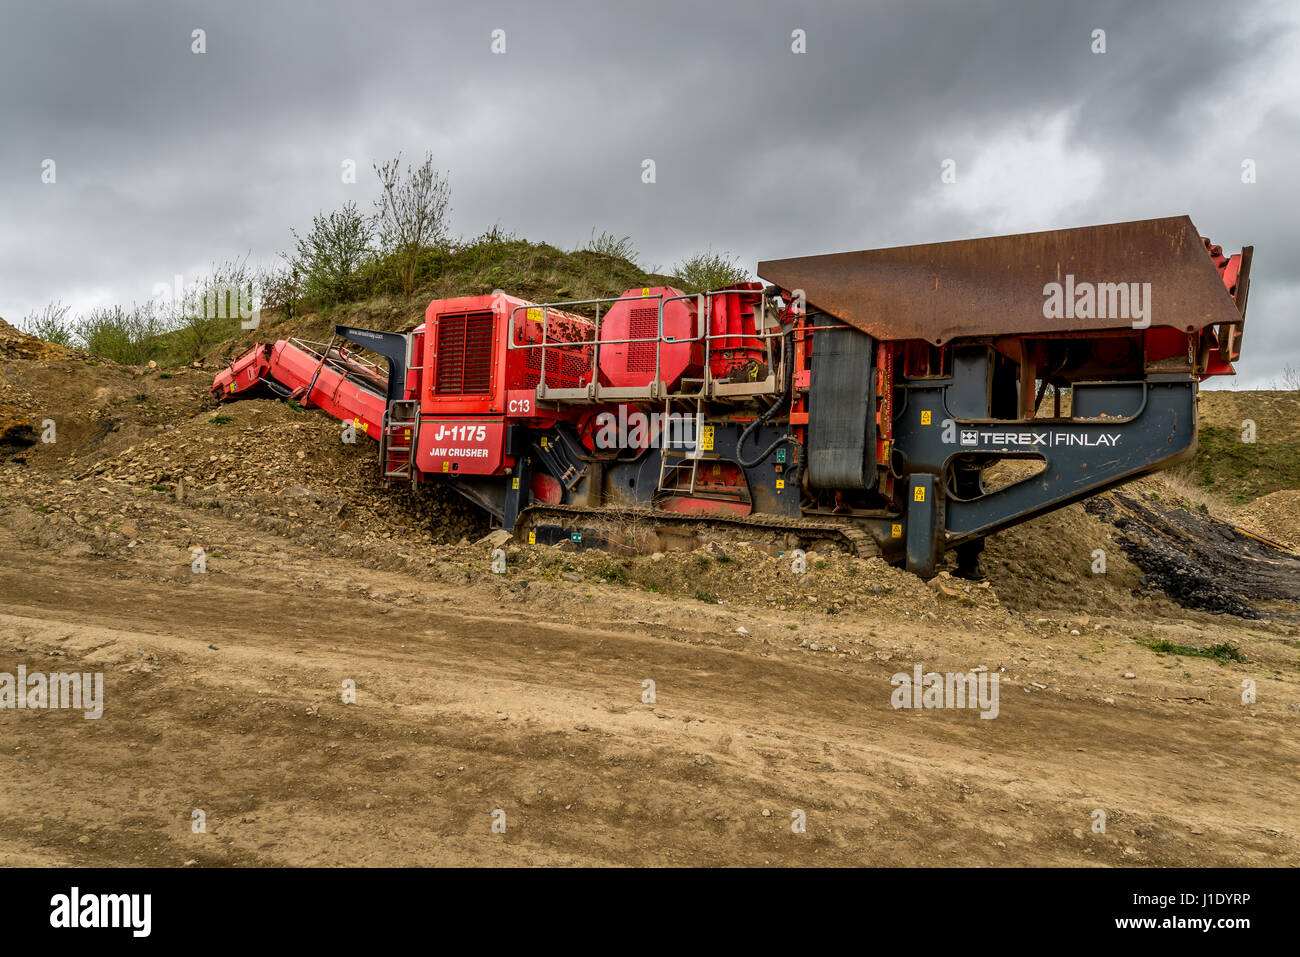 Terex Finlay J-1175 jaw crusher at a disused quarry in West  Yorkshire,England, UK